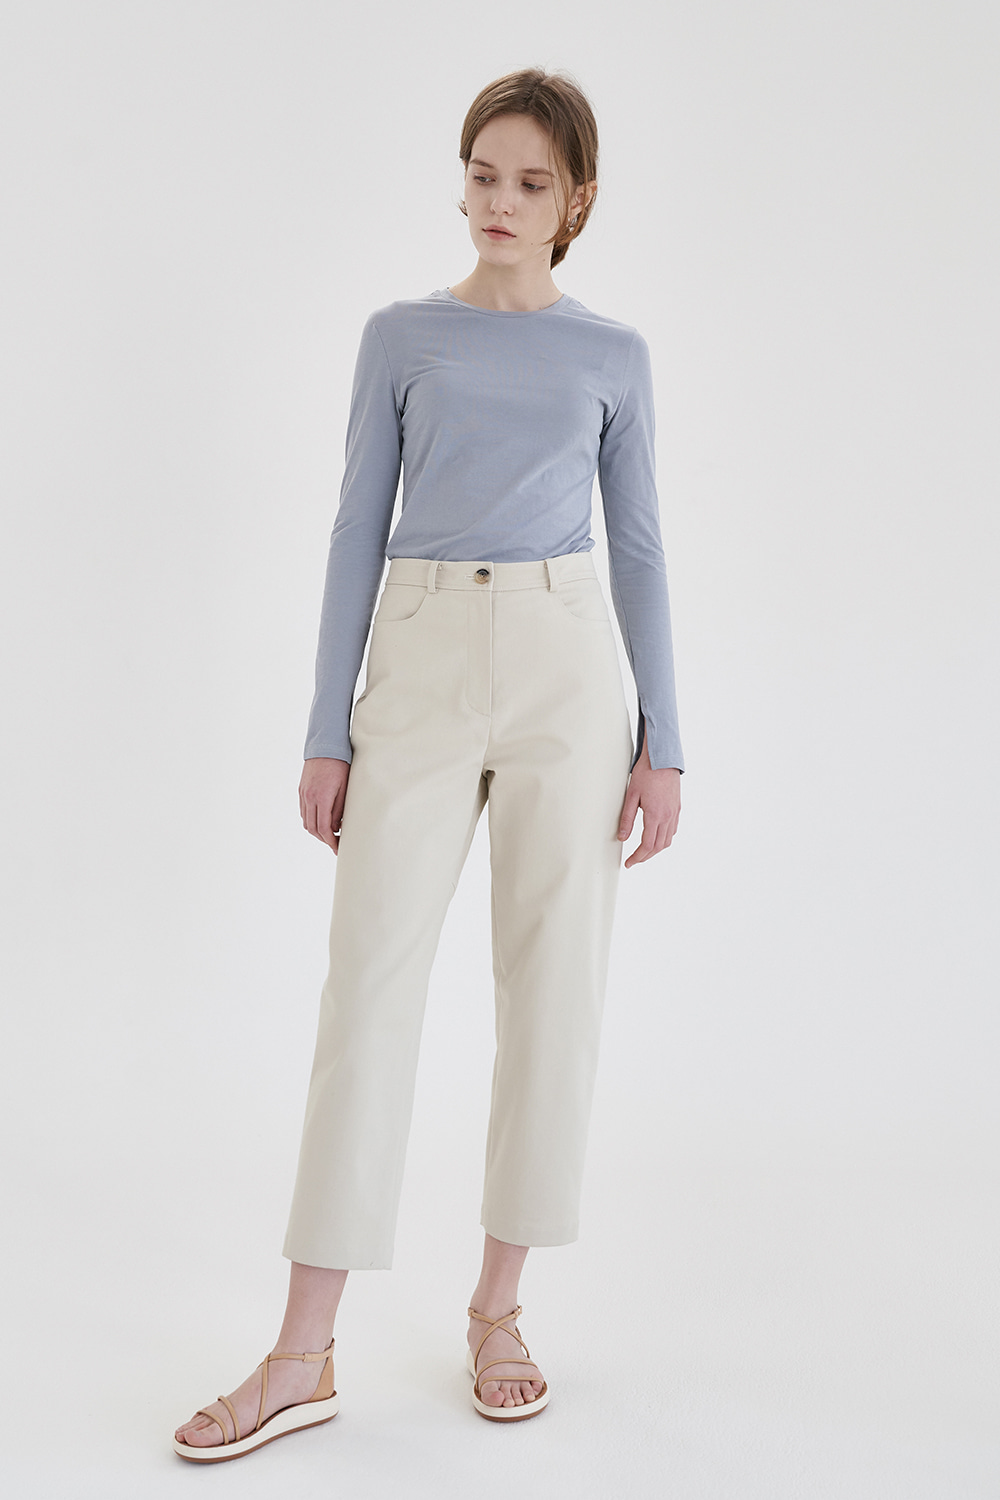 comfortable silhouette pants